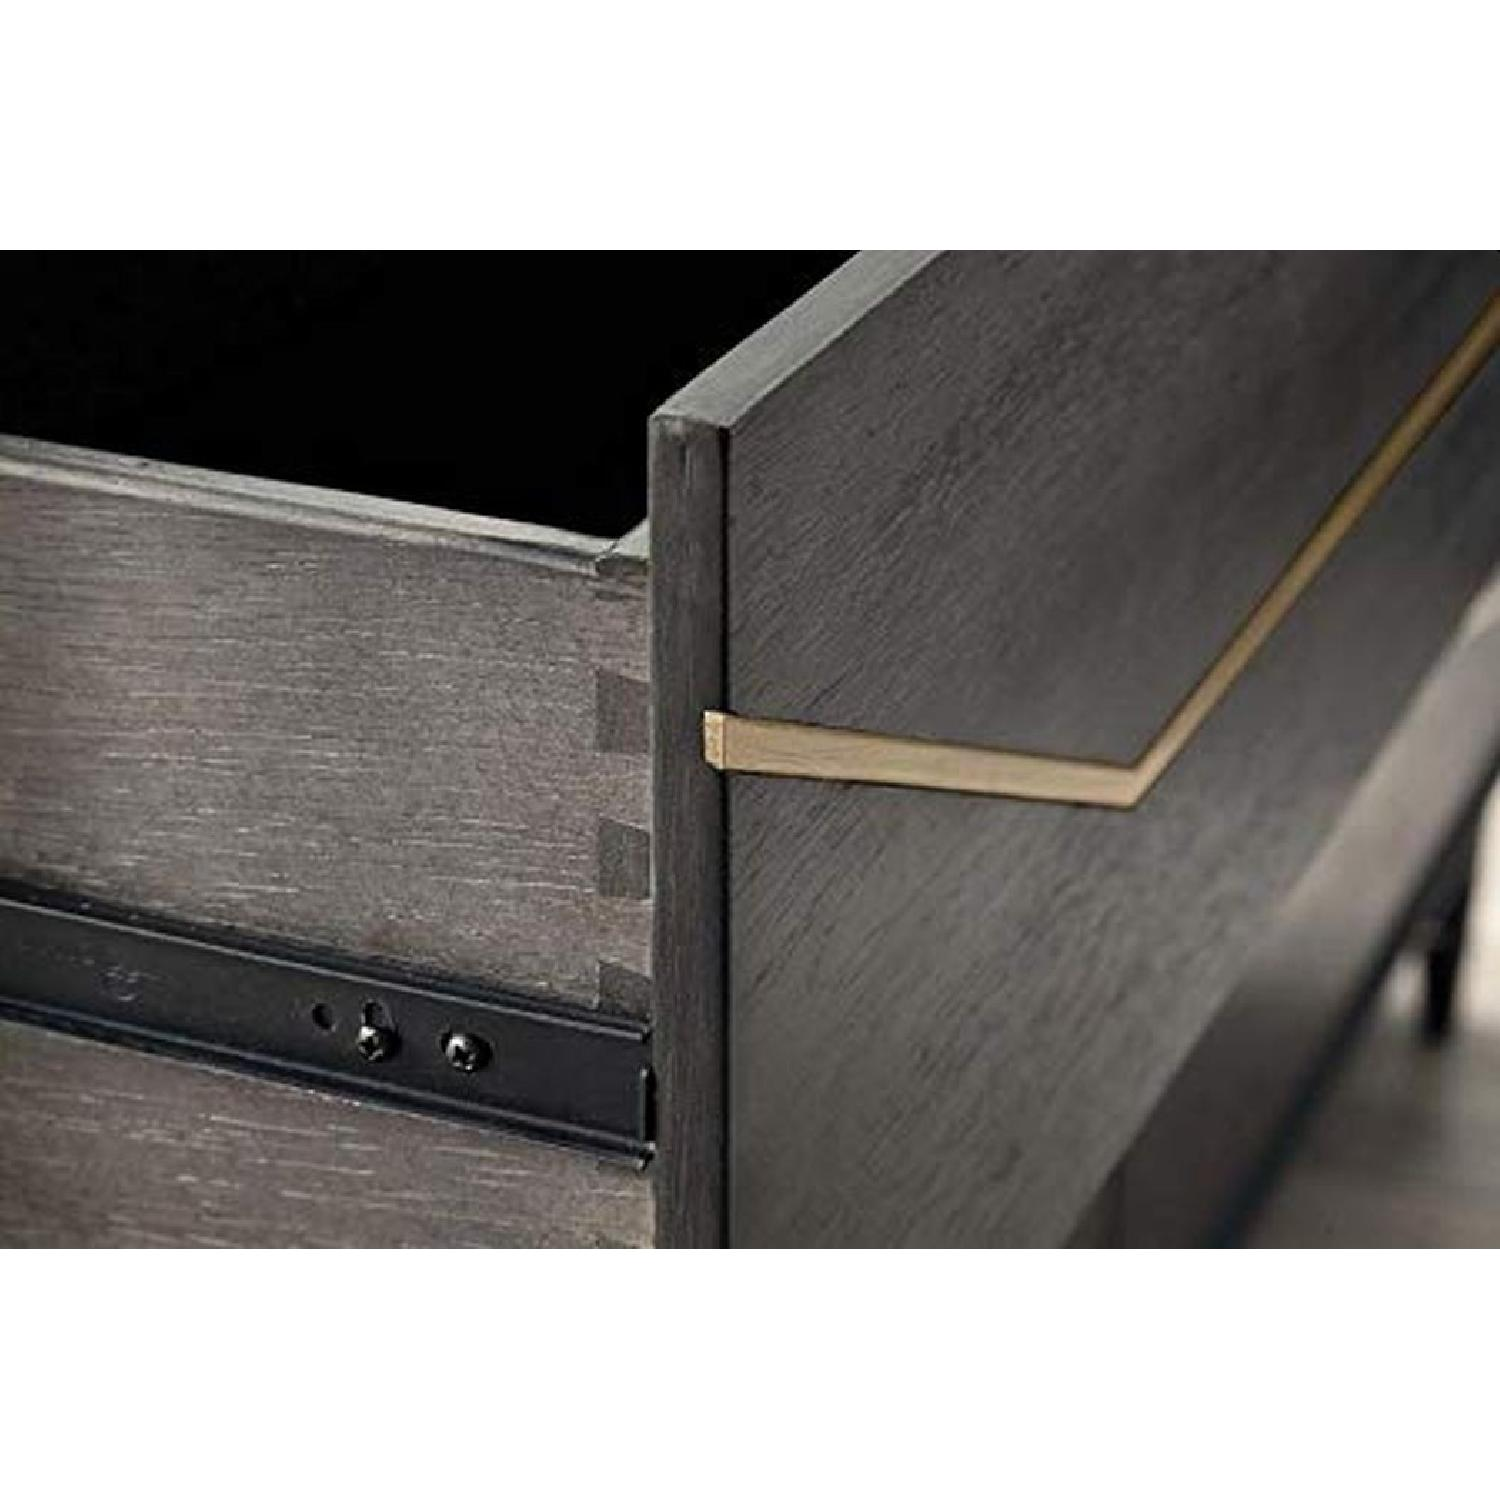 Modern Chest in Graphite Finish w/ Gold Color Inlay - image-1